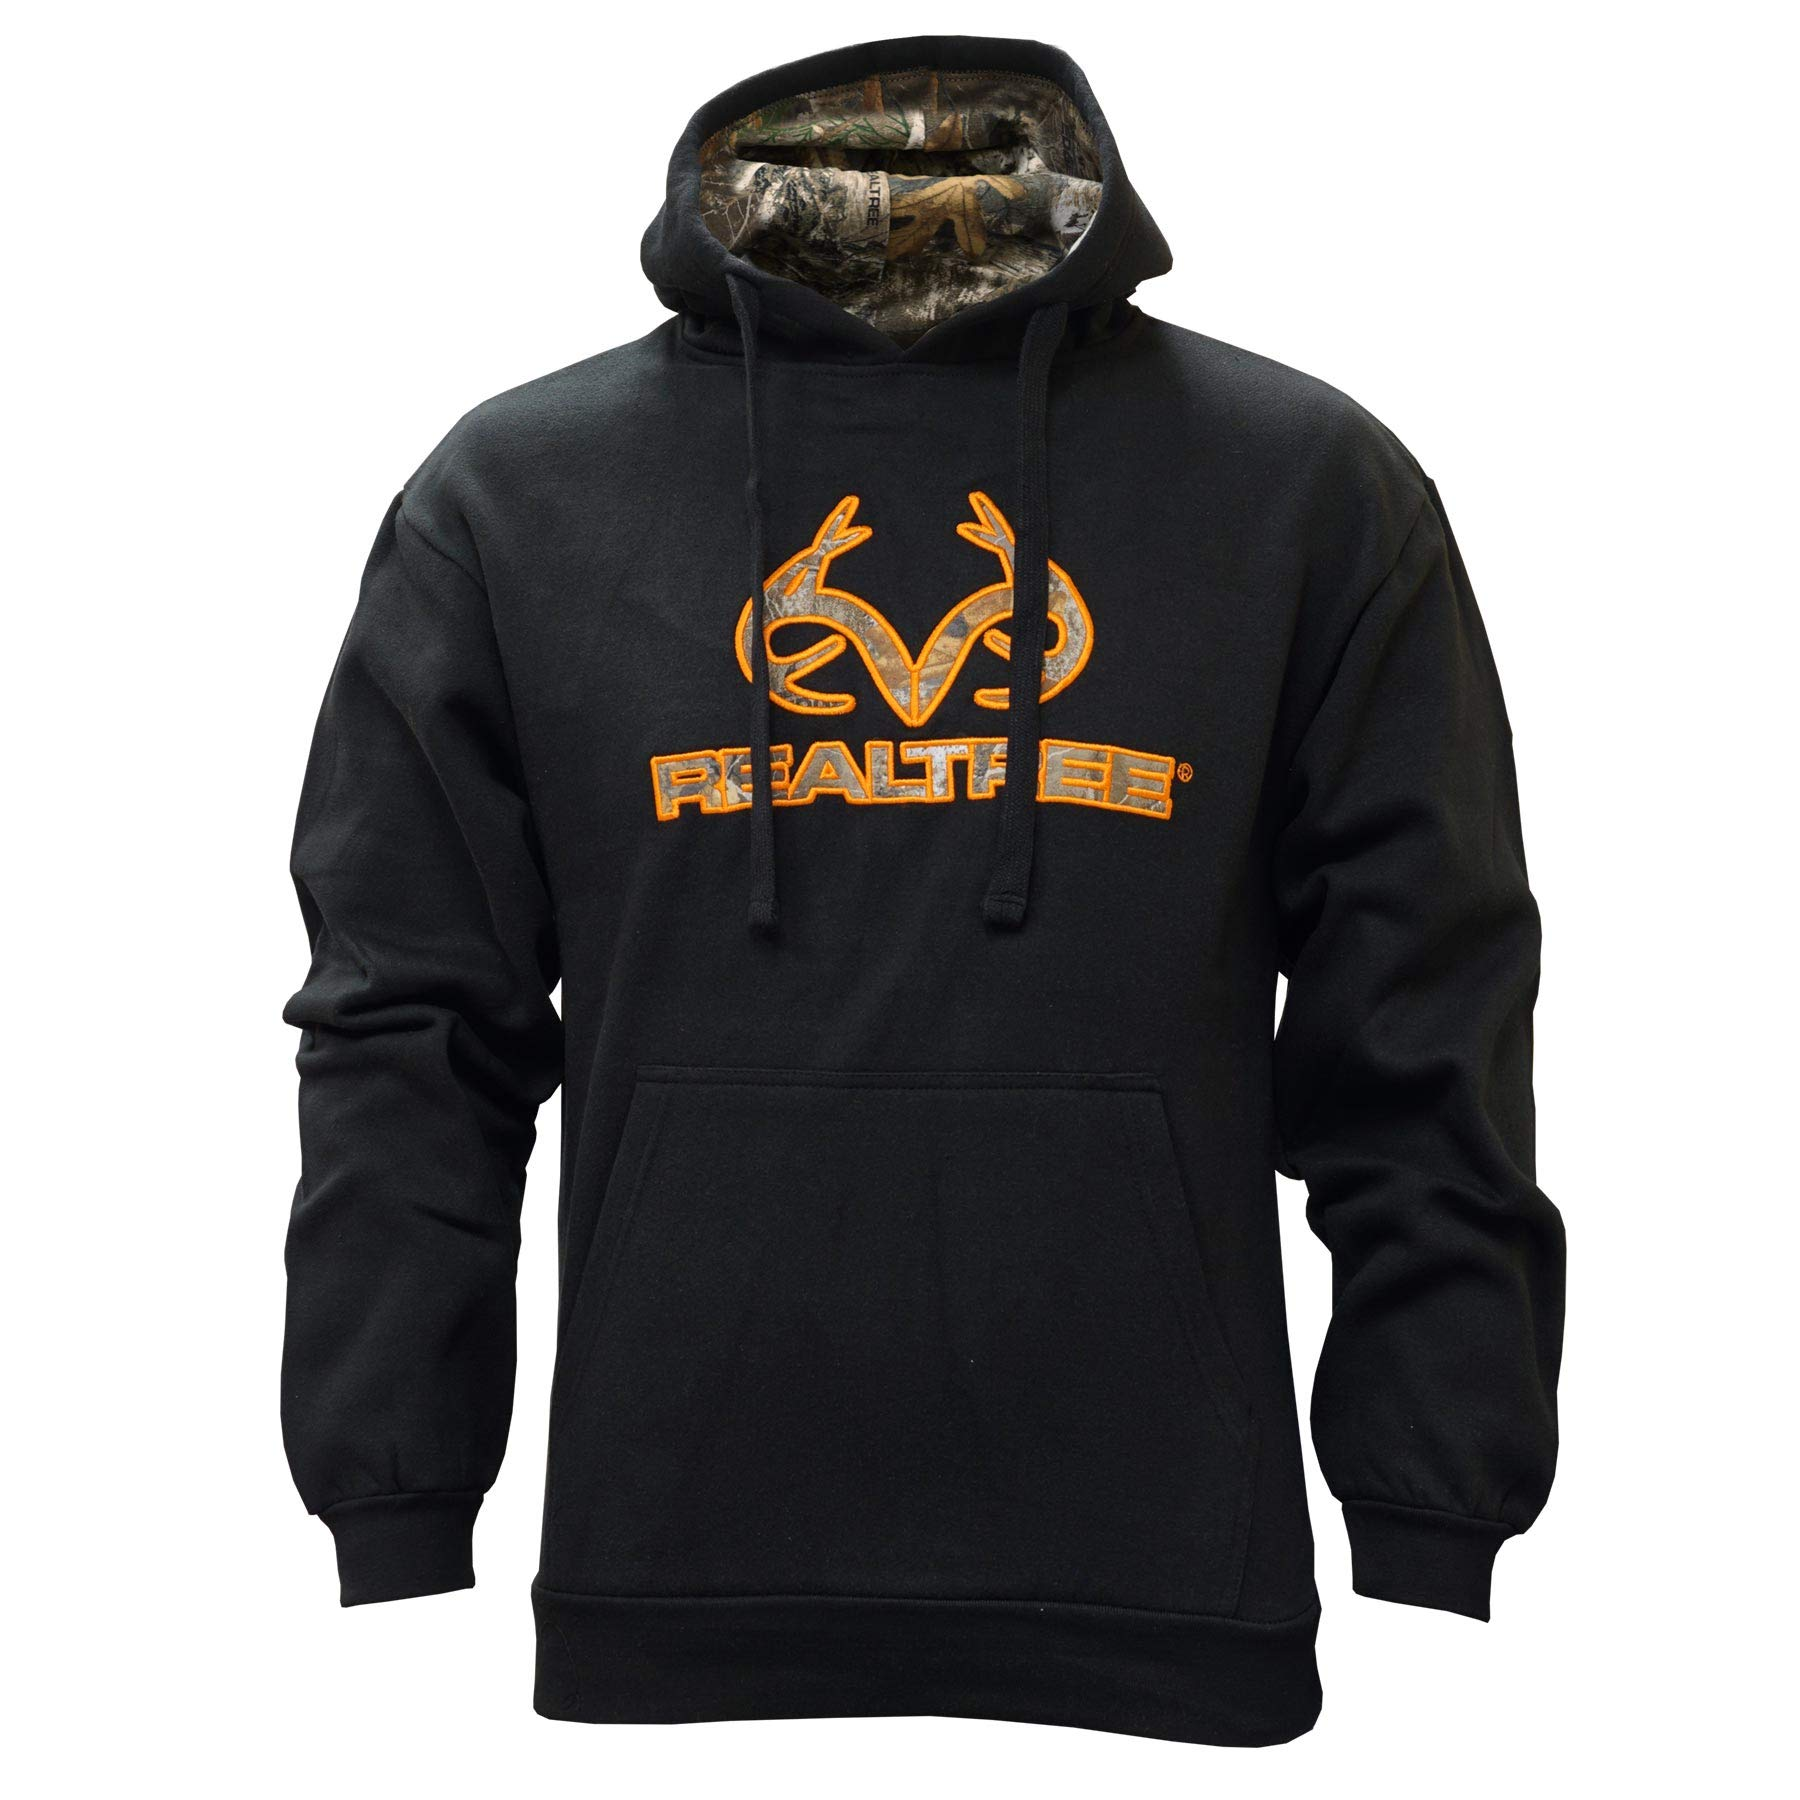 Staghorn Realtree Men's Fleece Applique Hoodie, Black, Medium